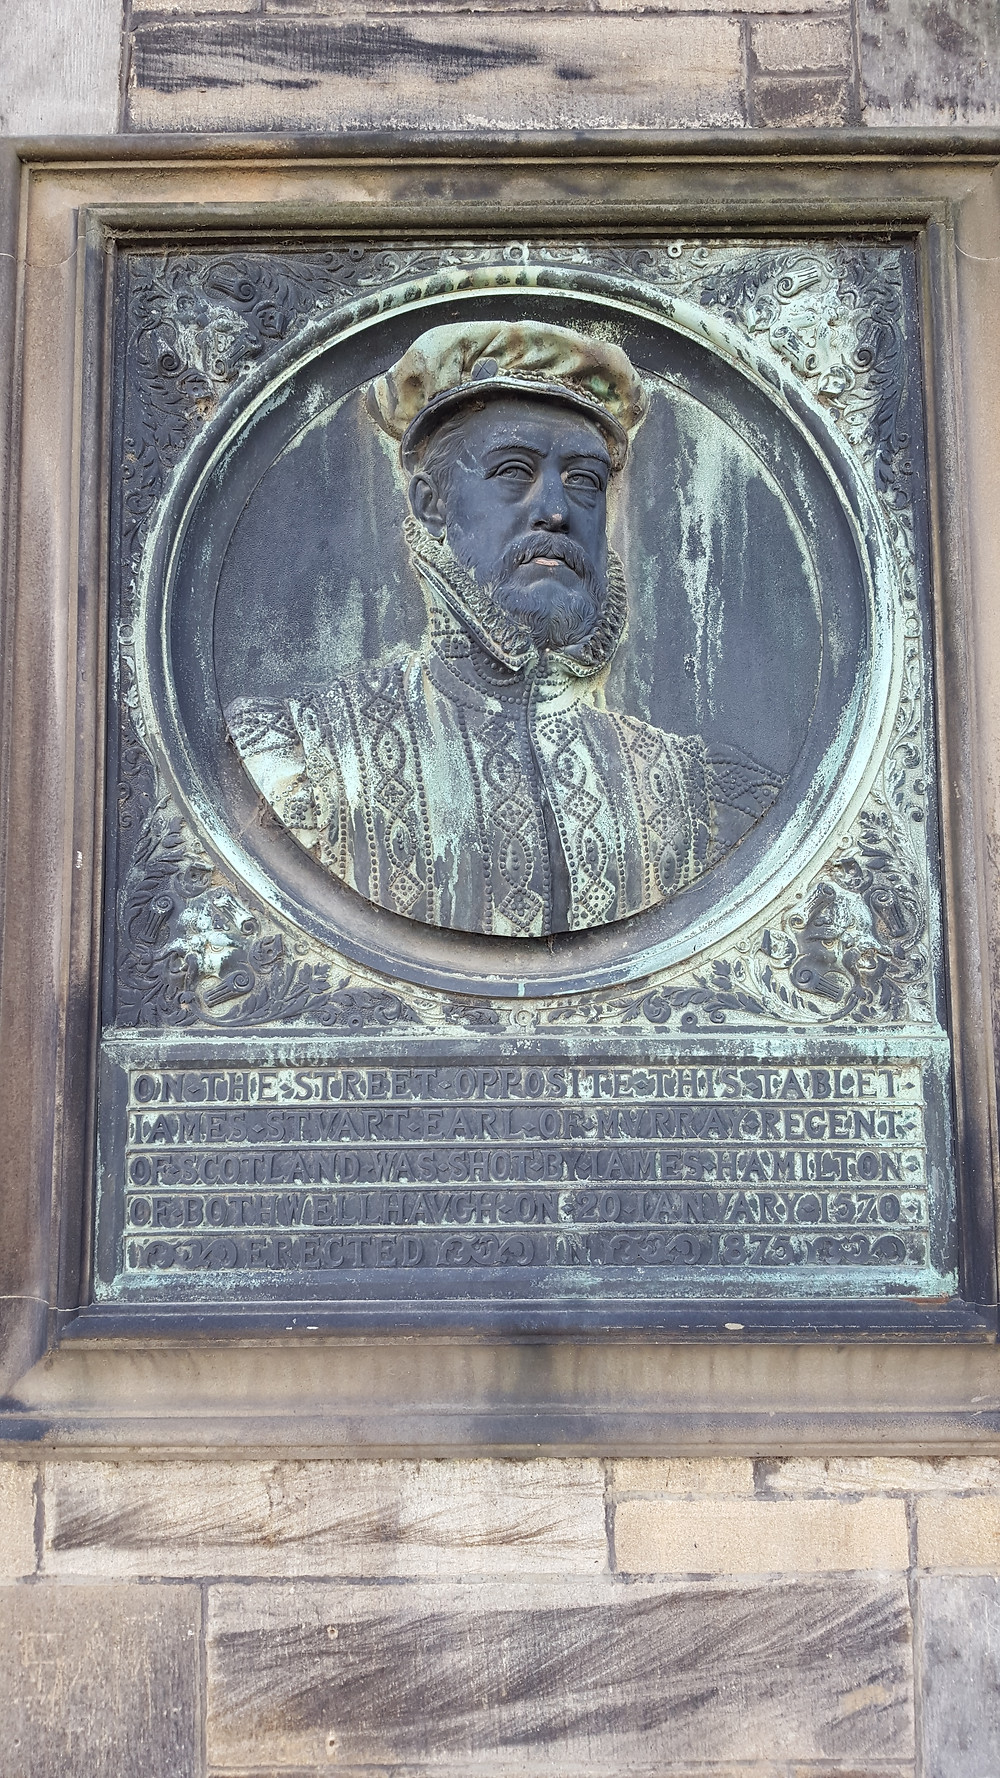 The Regent's commemorative plaque at the Court Residence, Linlithgow